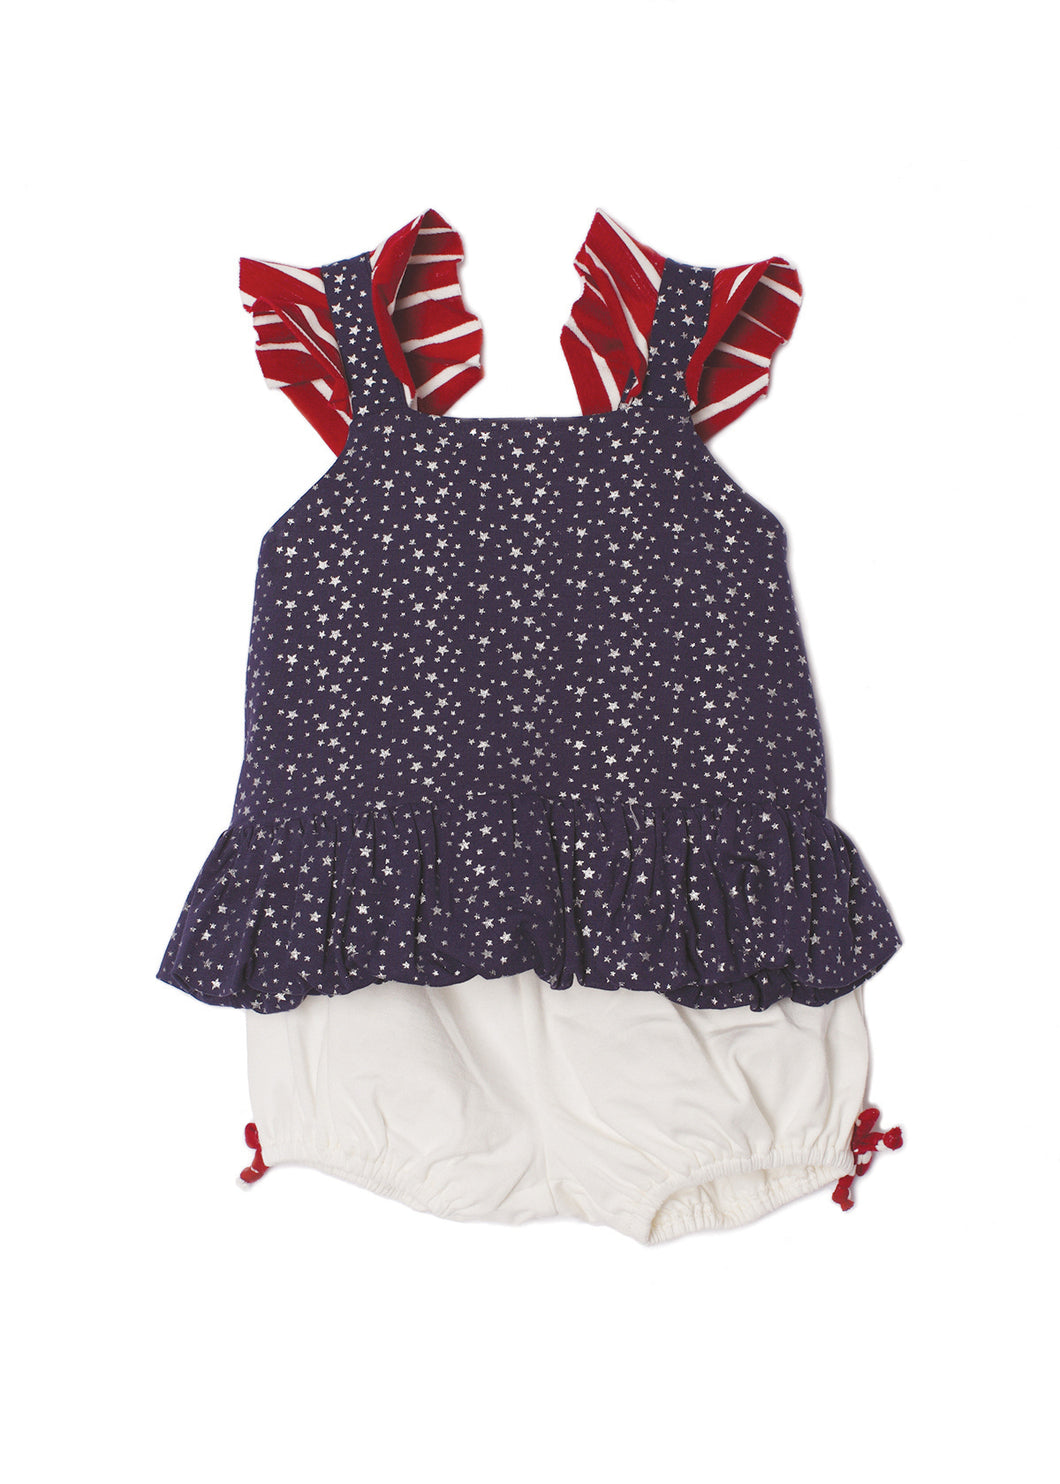 Isobella and Chloe Pearlette Bloomer Set - Blue - Bloom Kids Collection - Isobella and Chloe